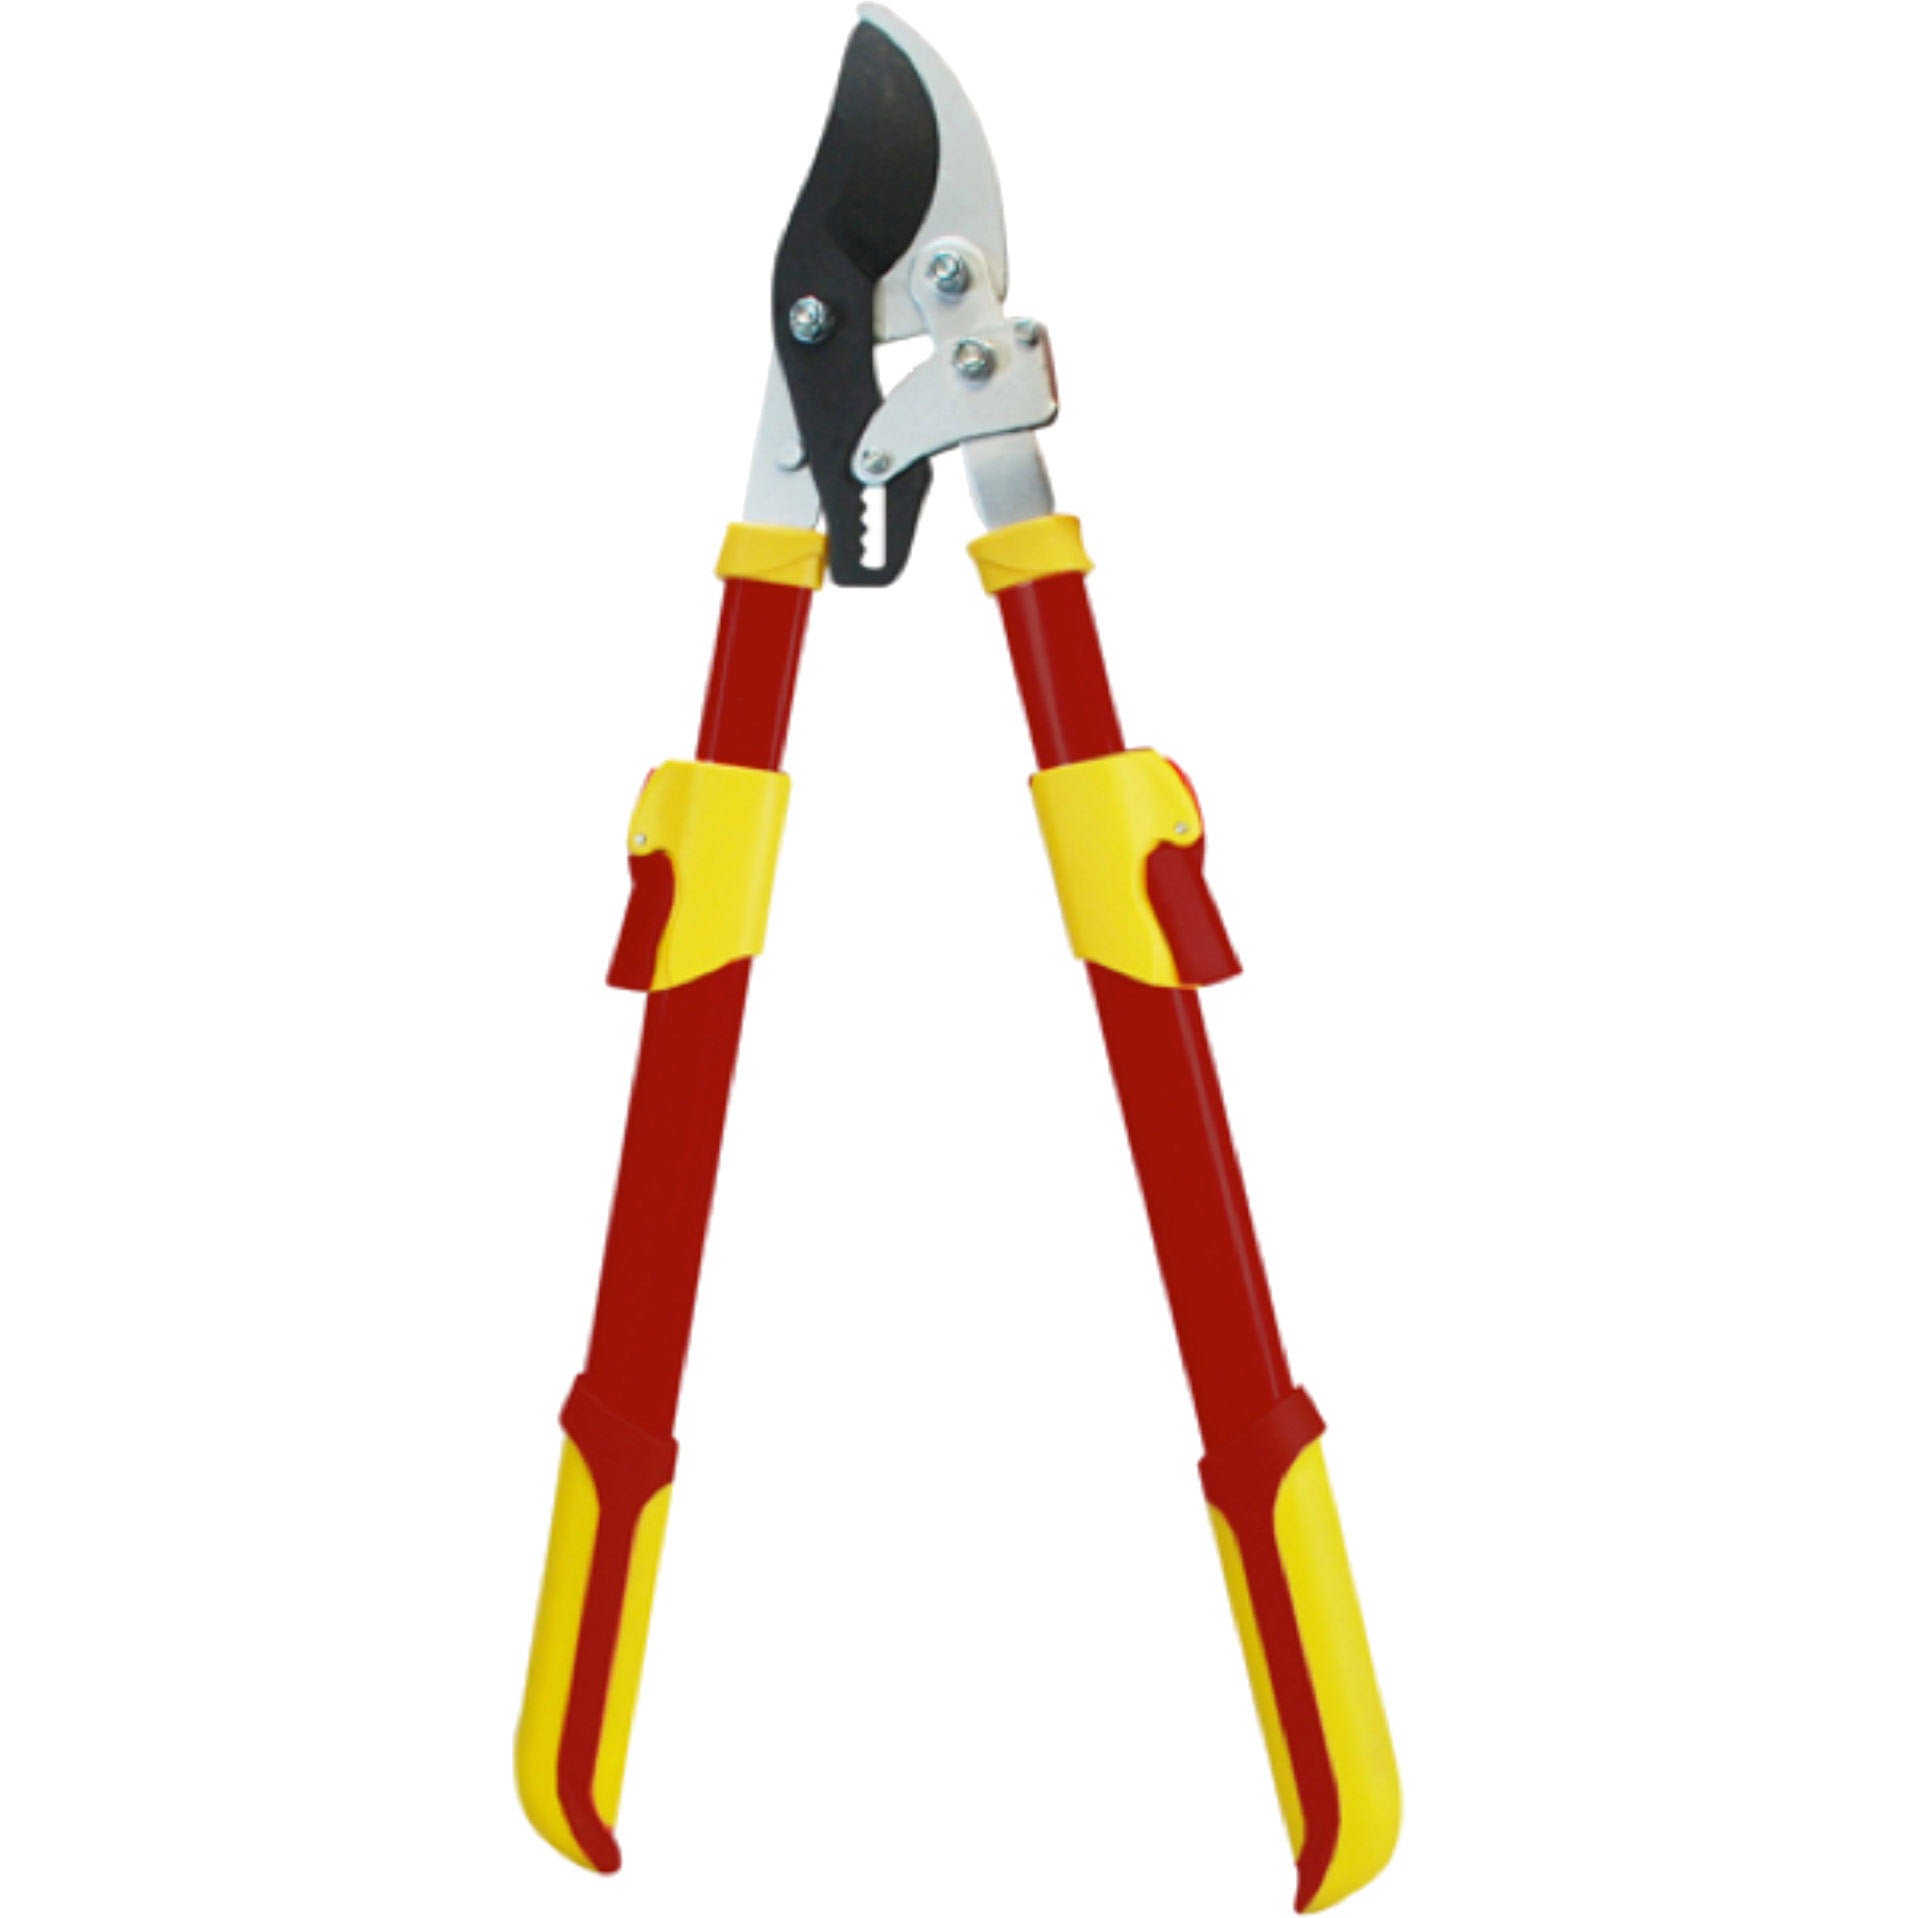 Kingfisher Gold Telescopic Bypass Ratchet Lopper